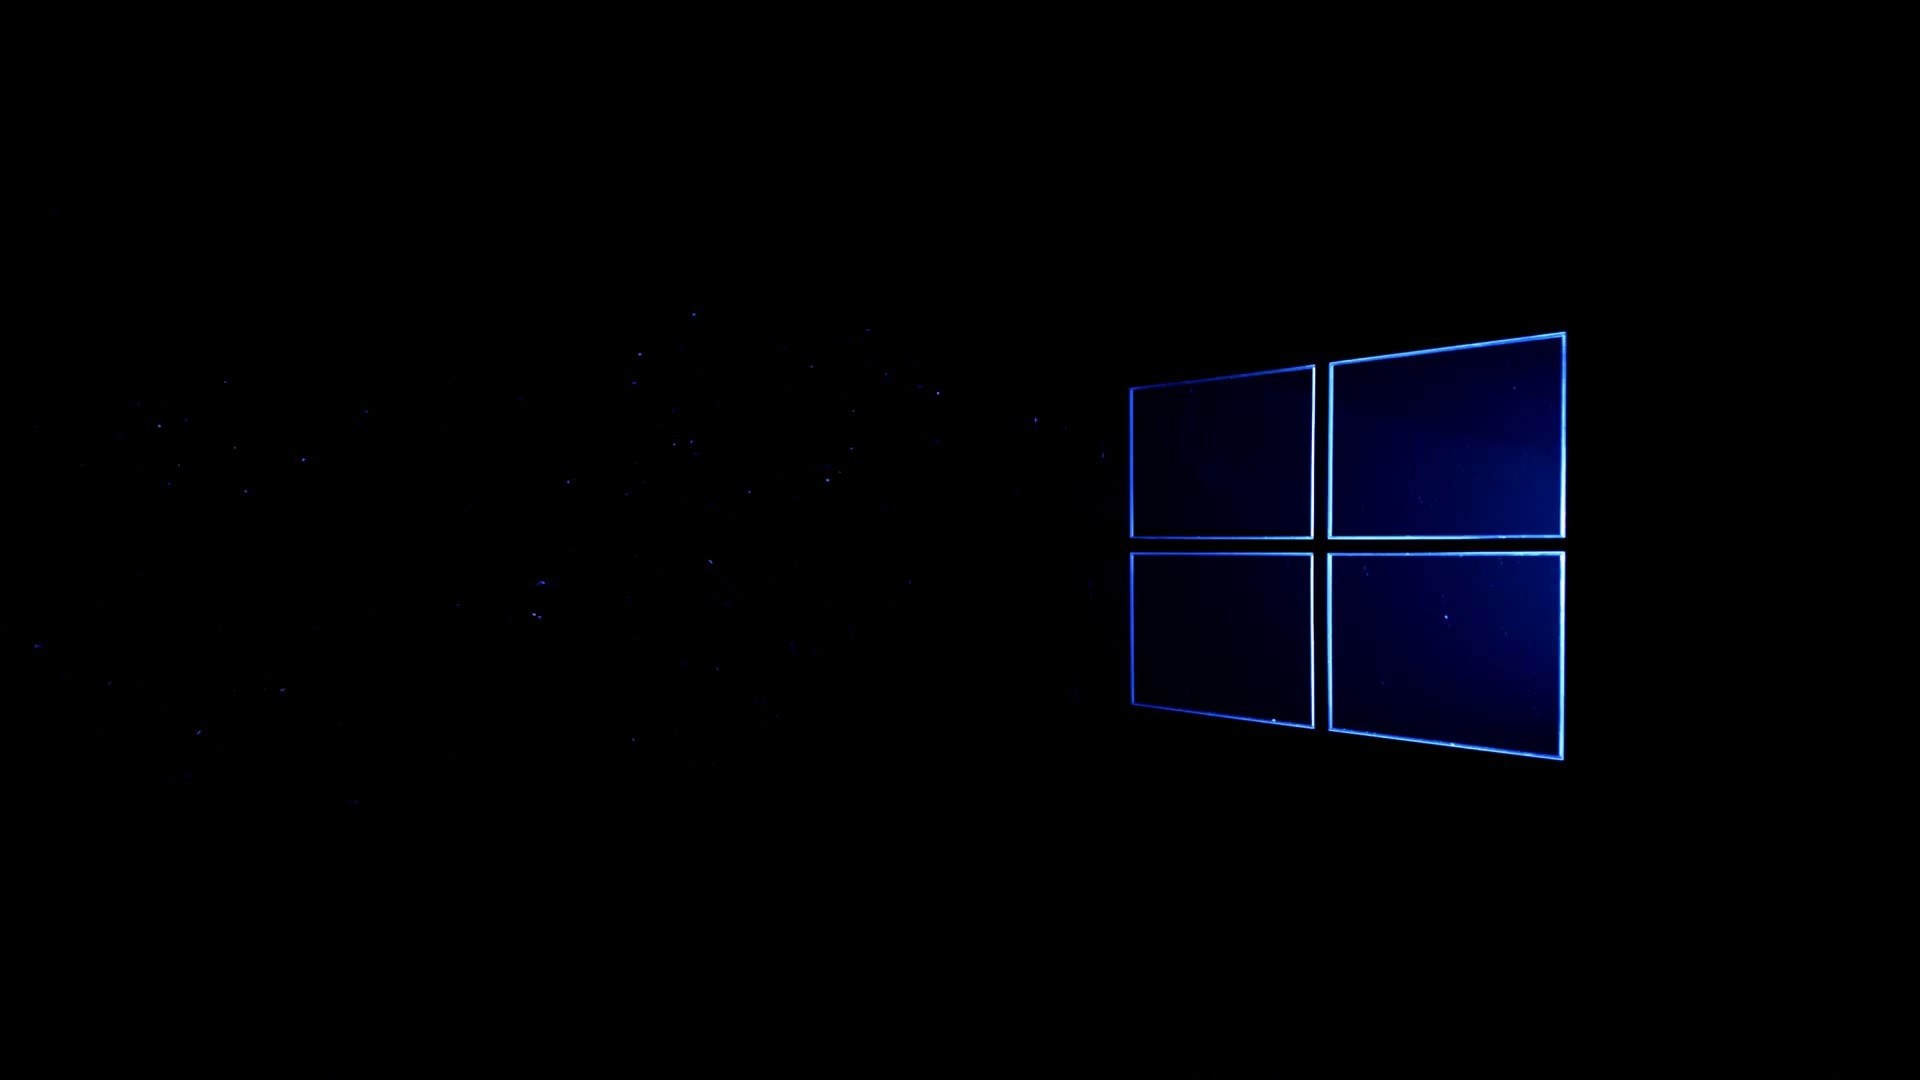 Black Wallpaper Windows 10 (61+ images)